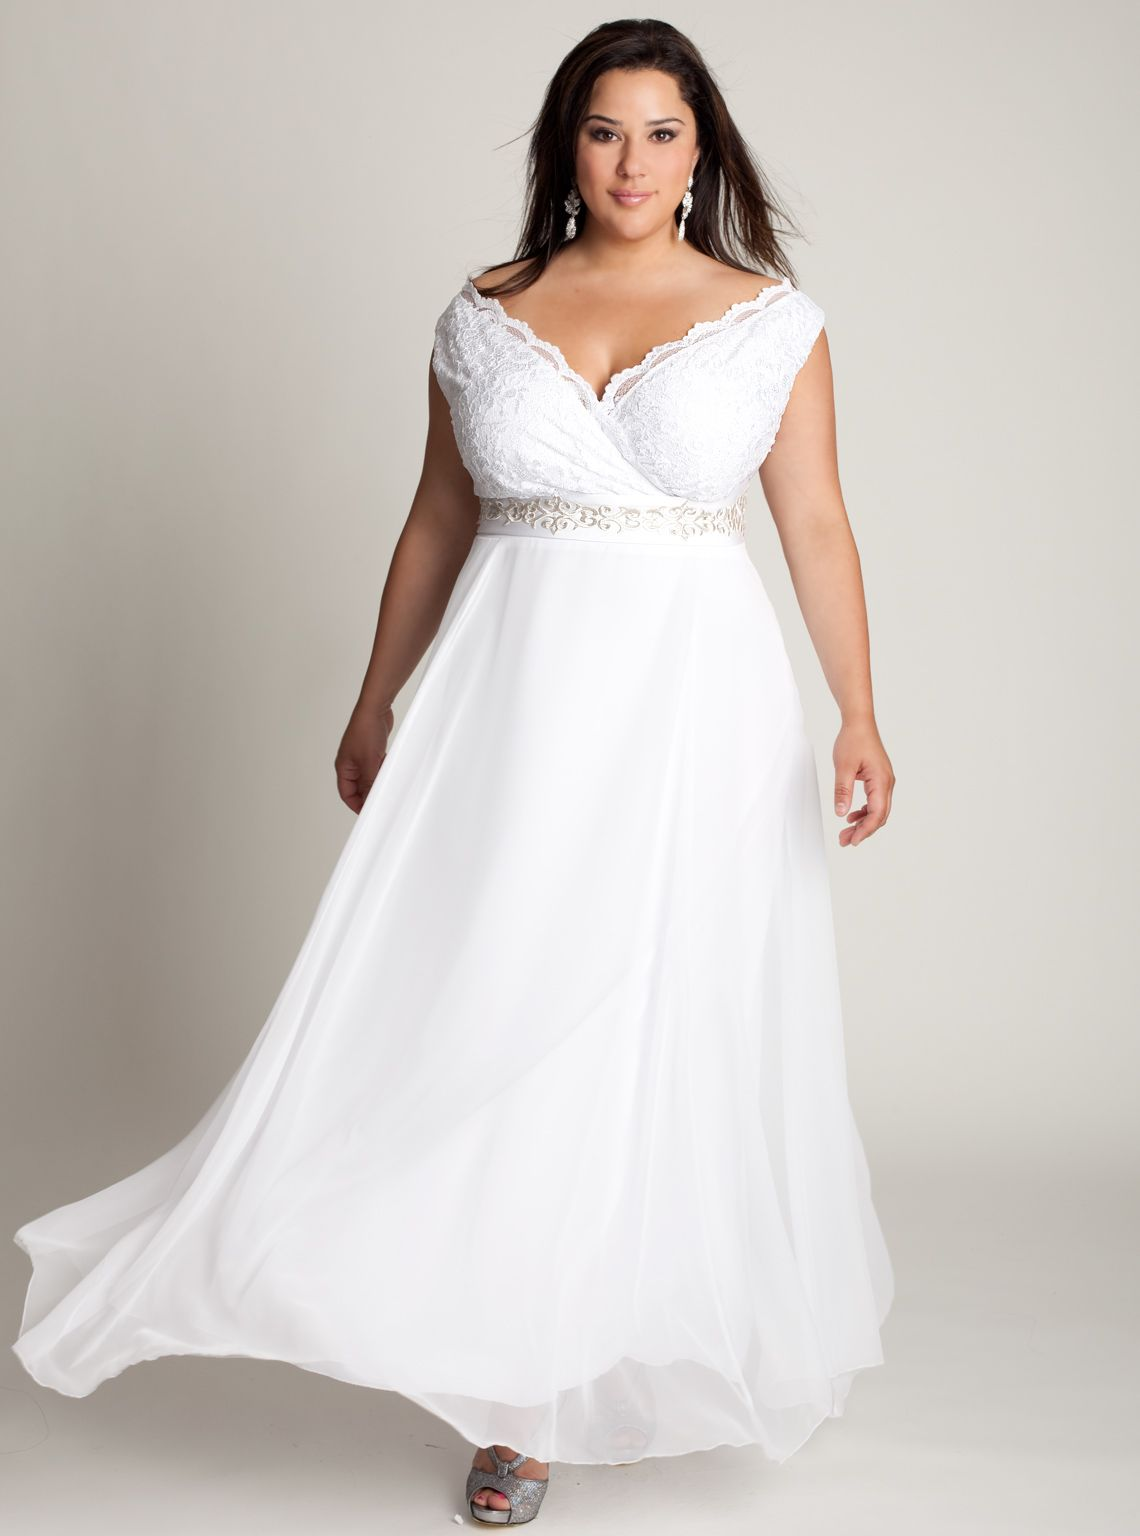 summer outdoor casual wedding dresses for plus size | plus sized